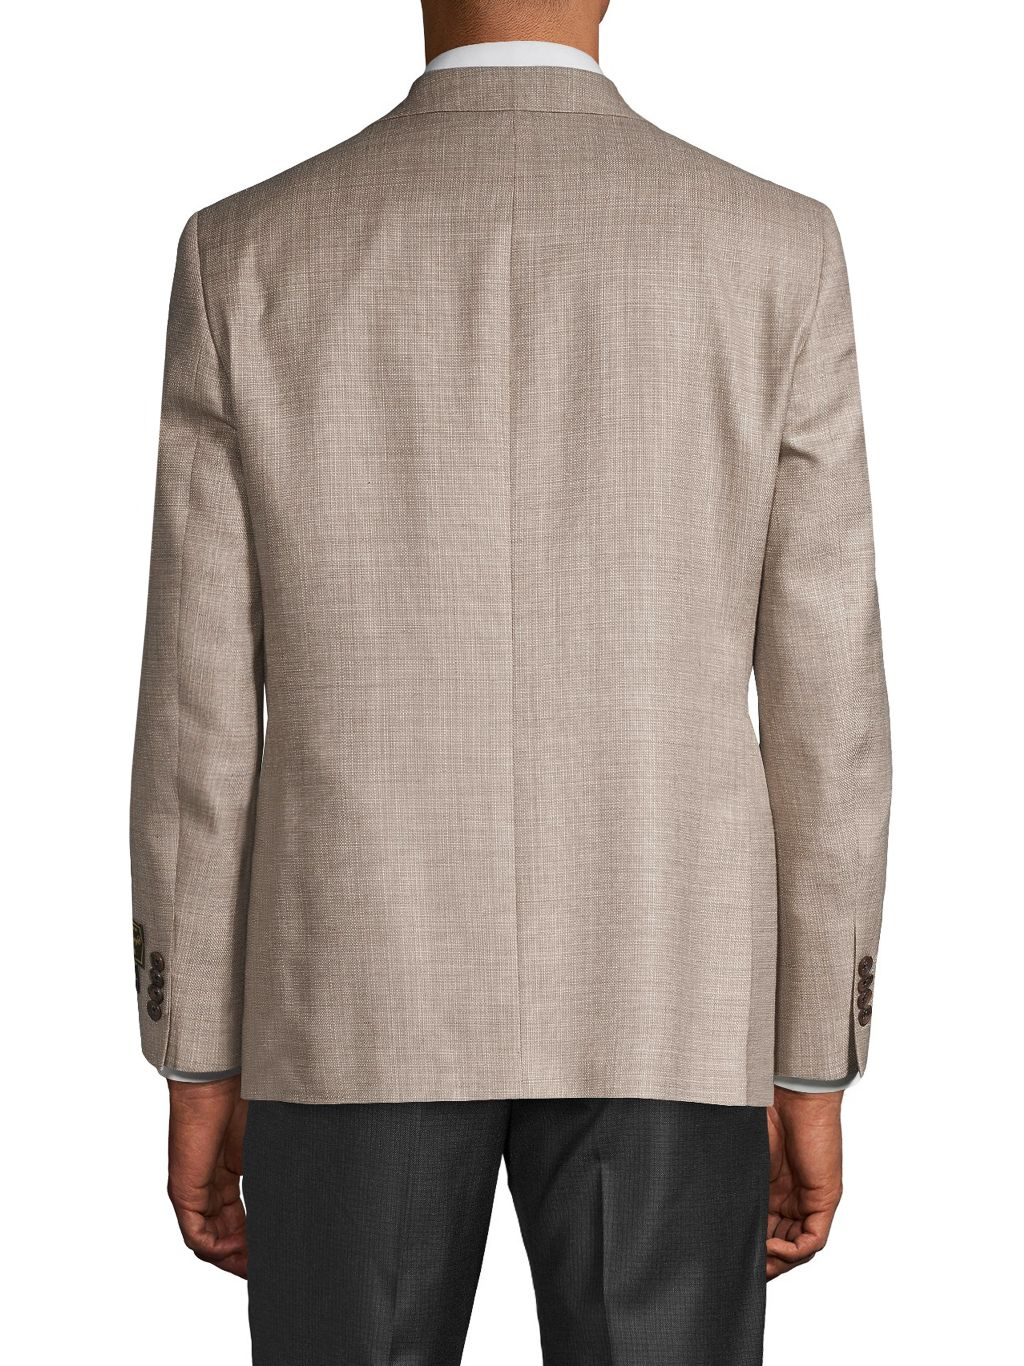 Saks Fifth Avenue Made in Italy Regular-Fit Wool, Silk & Linen Textured Sportcoat